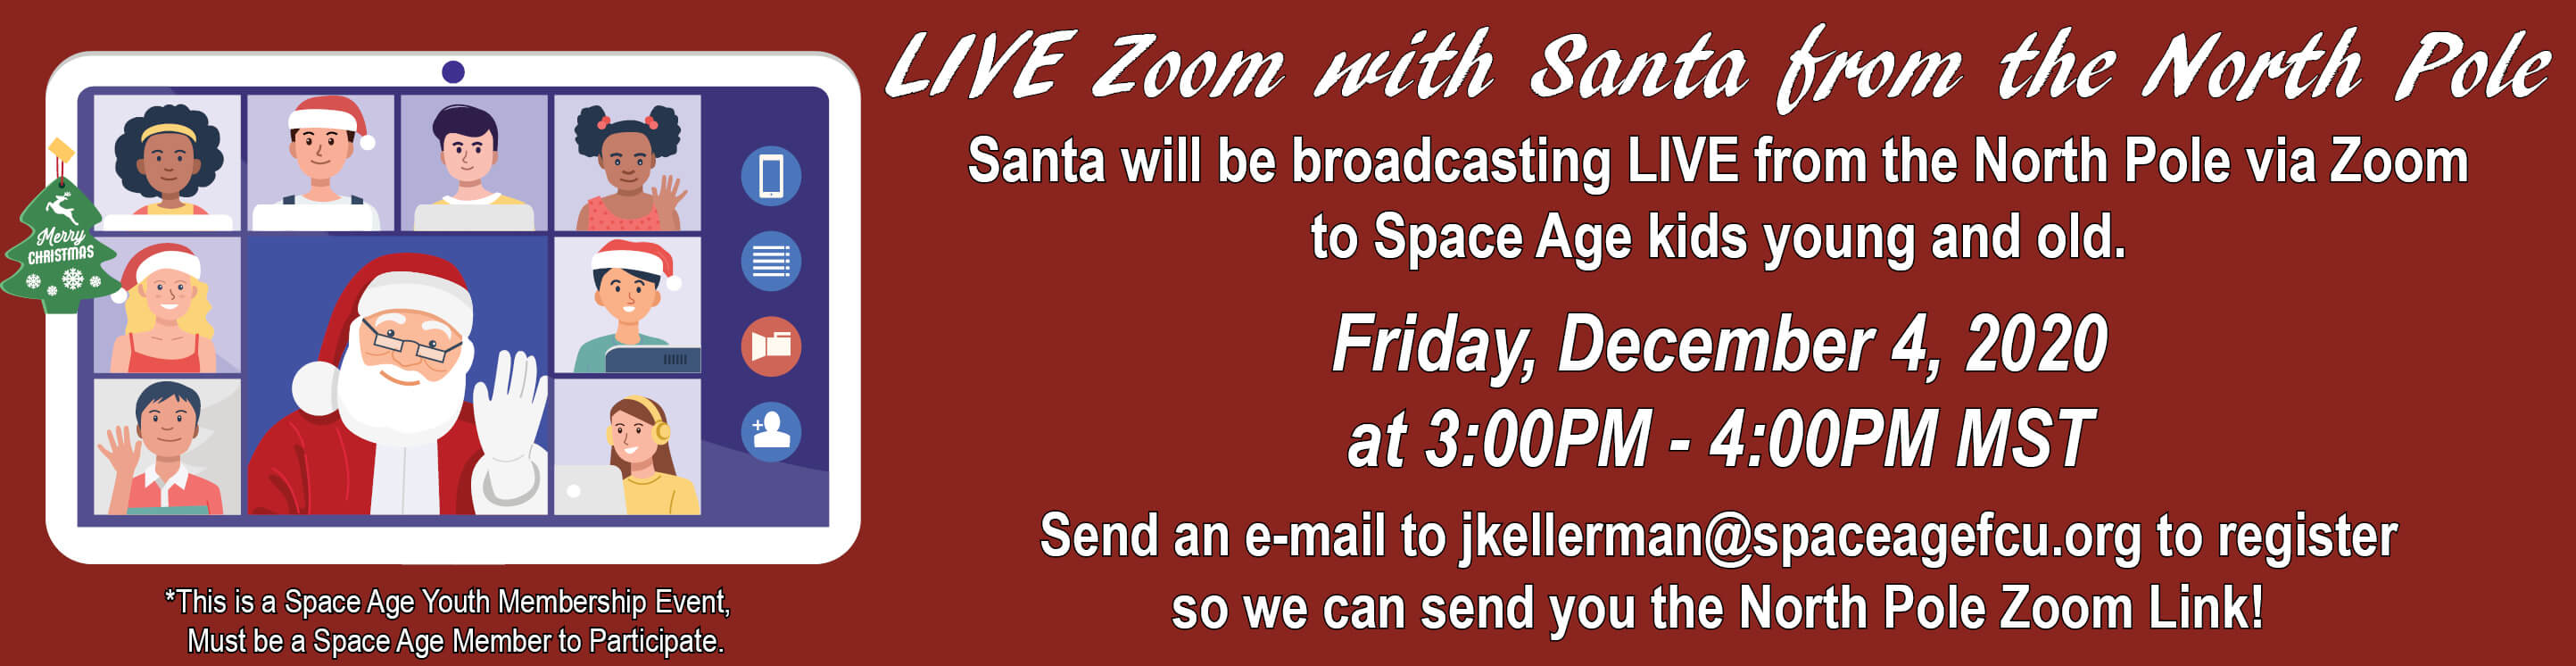 Cartoon of Santa in a Zoom Meeting with kids. Title Says, LIVE Zoom with Santa from the North Pole. Friday Dec. 4, 2020 3 to 4 PM